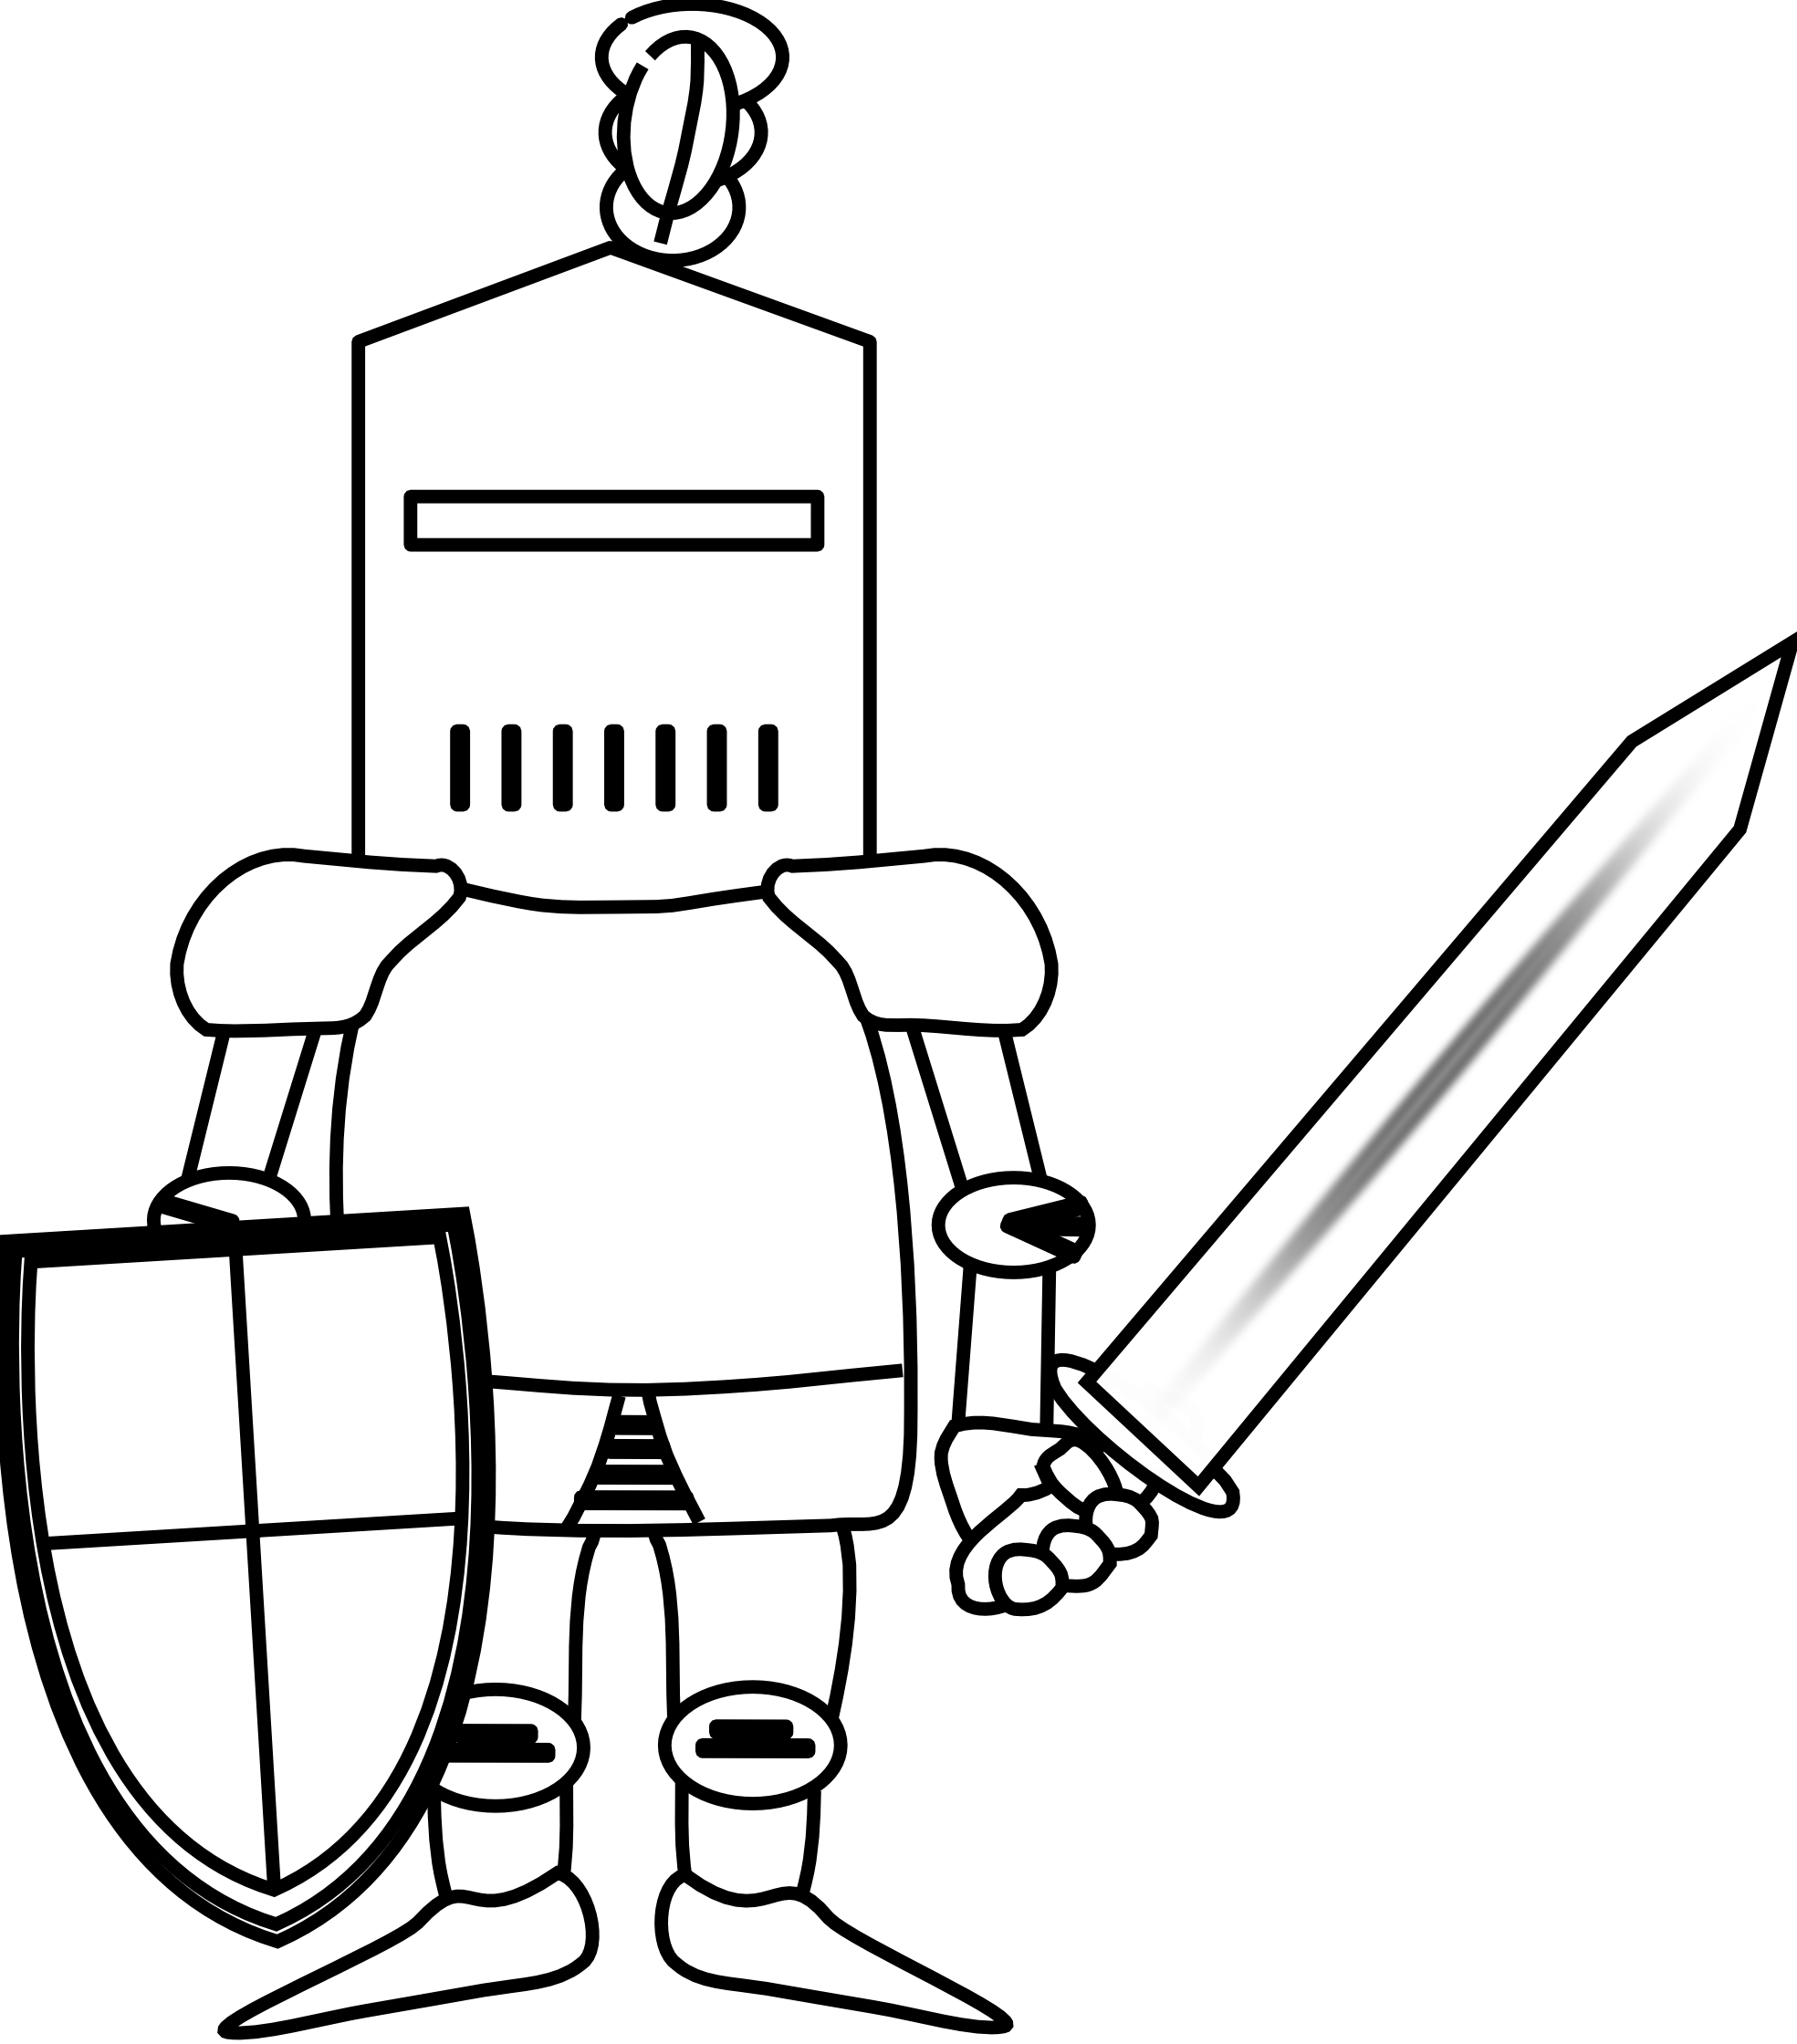 Greek clipart armor helmet, Greek armor helmet Transparent.